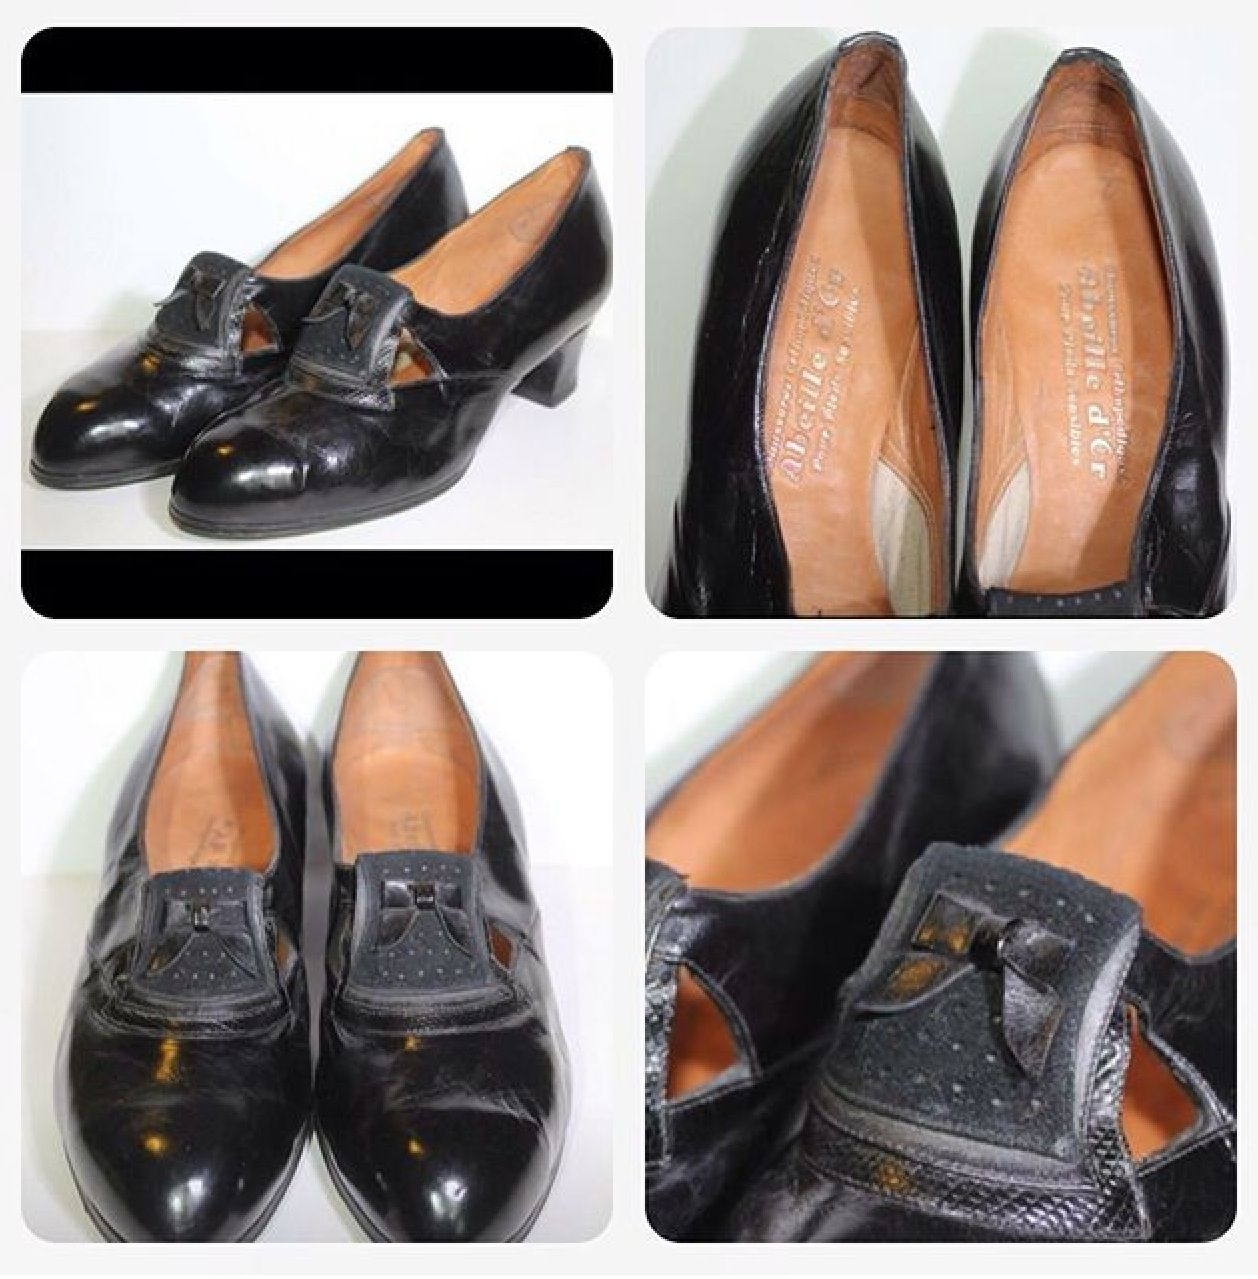 1930's French shoes